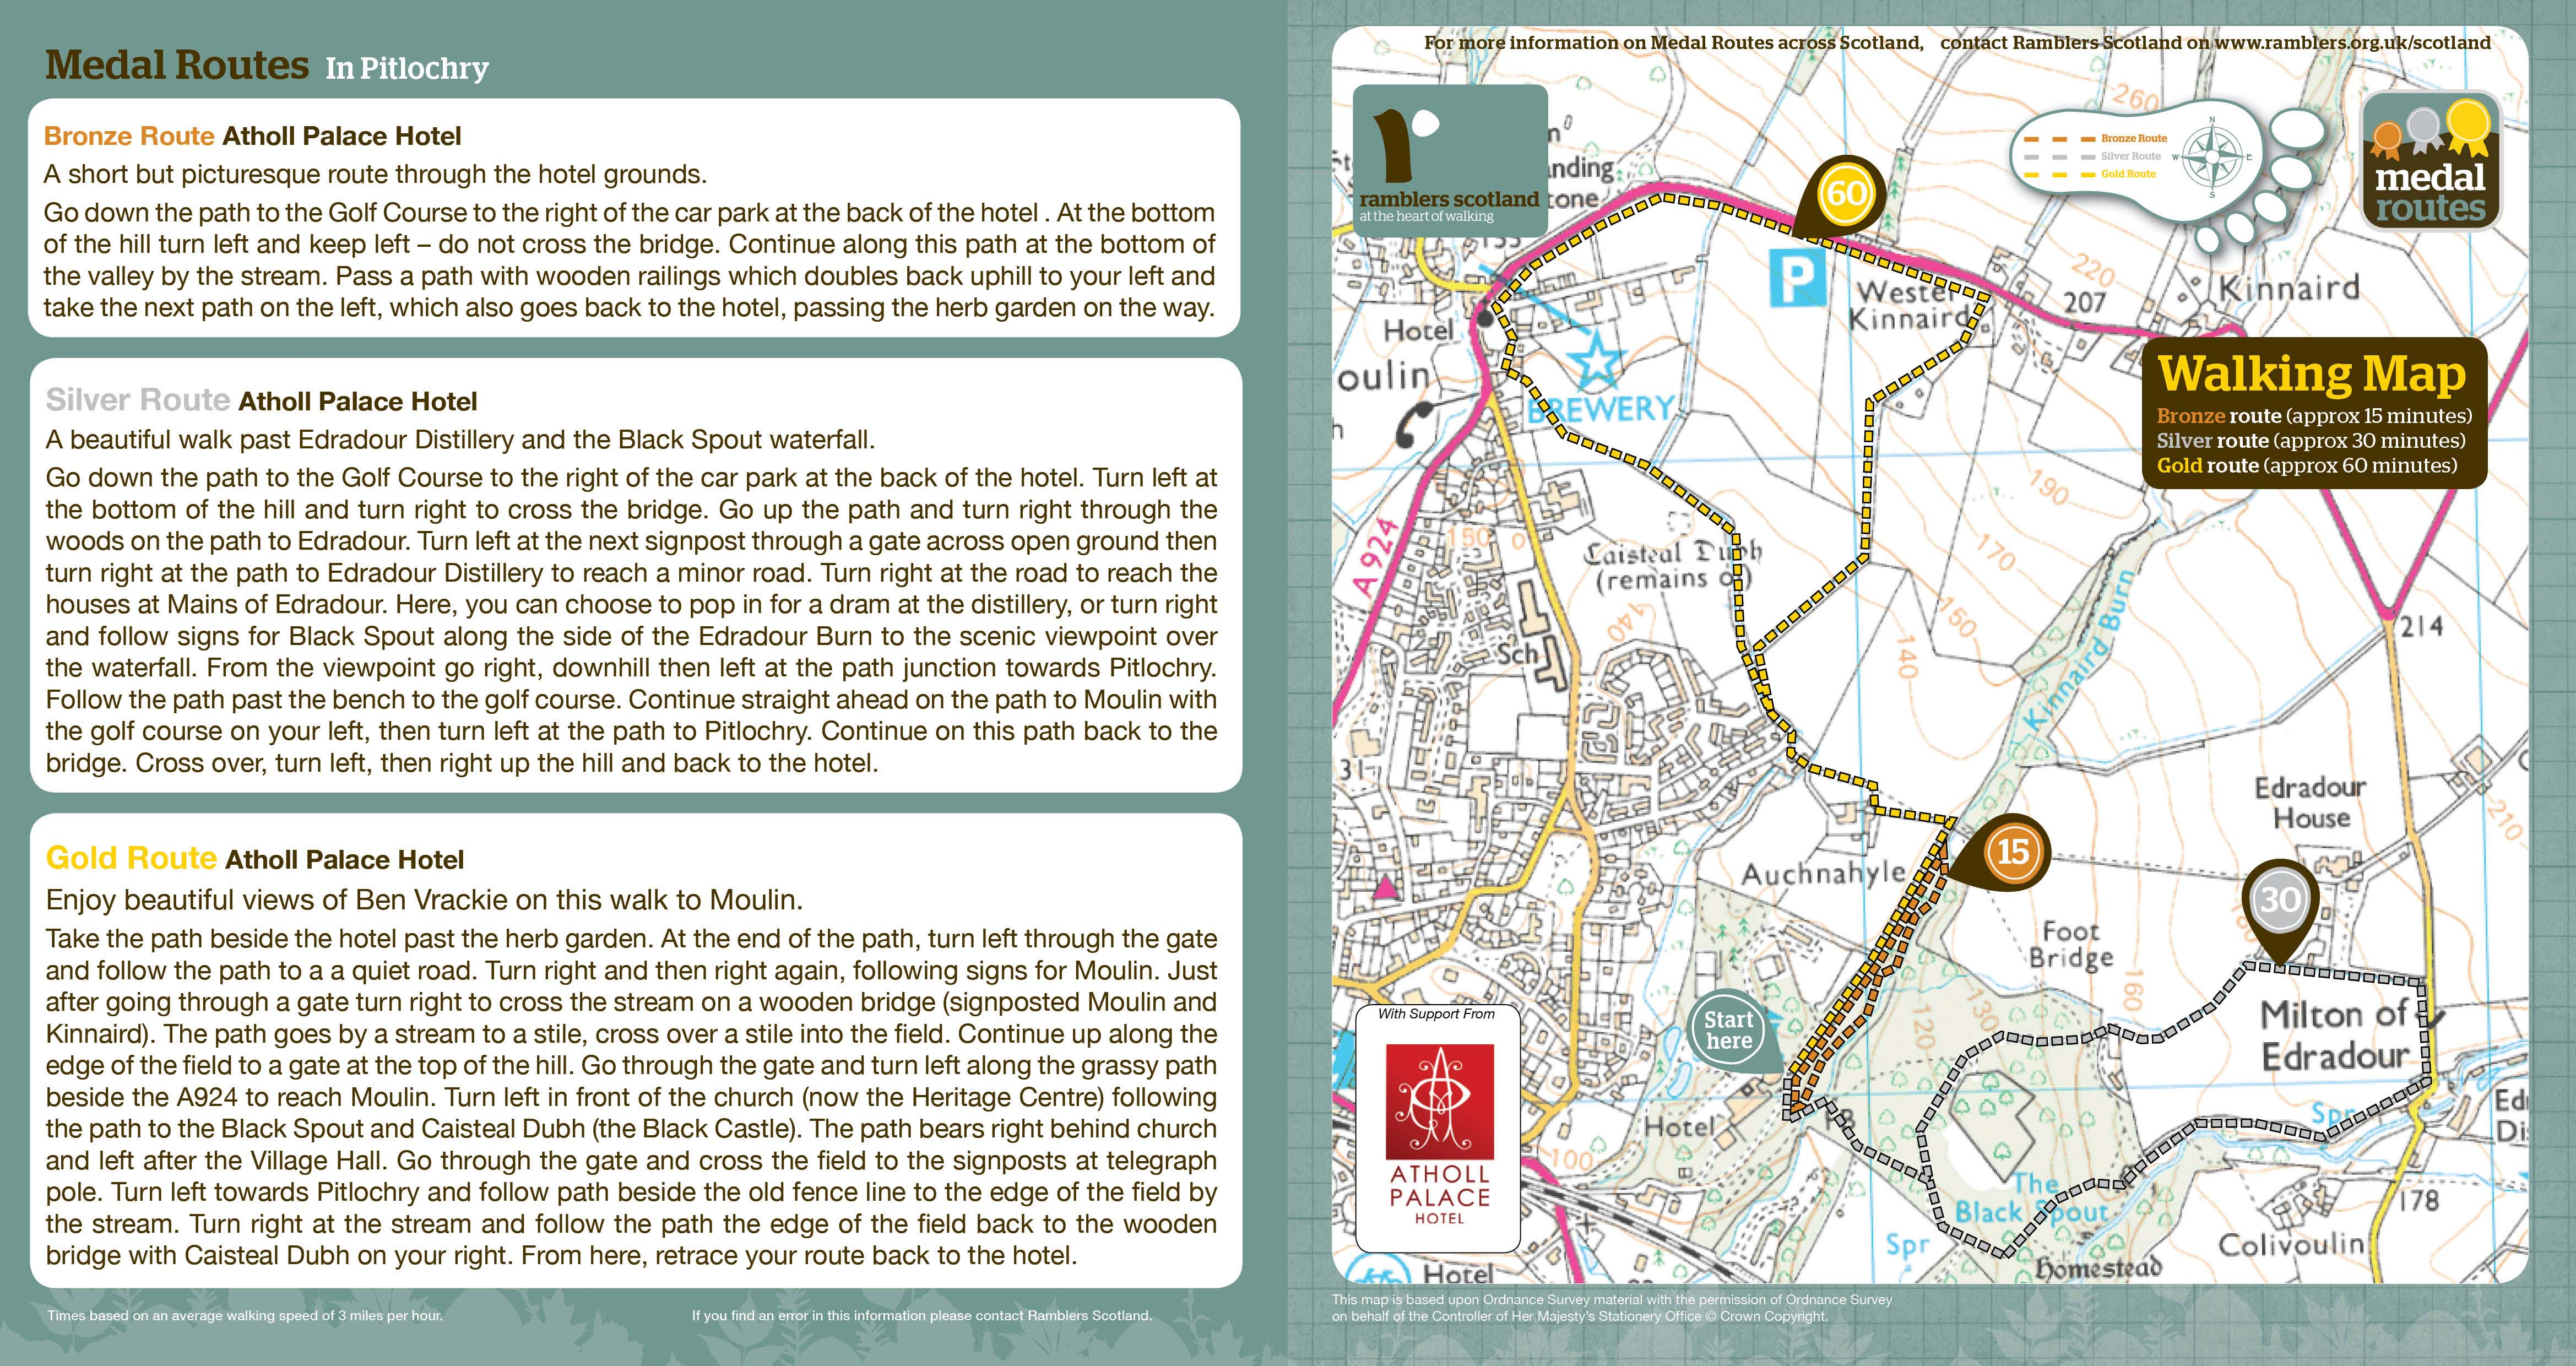 Pitlochry Scotland Map.Perth Kinross Council Pitlochry Path Network